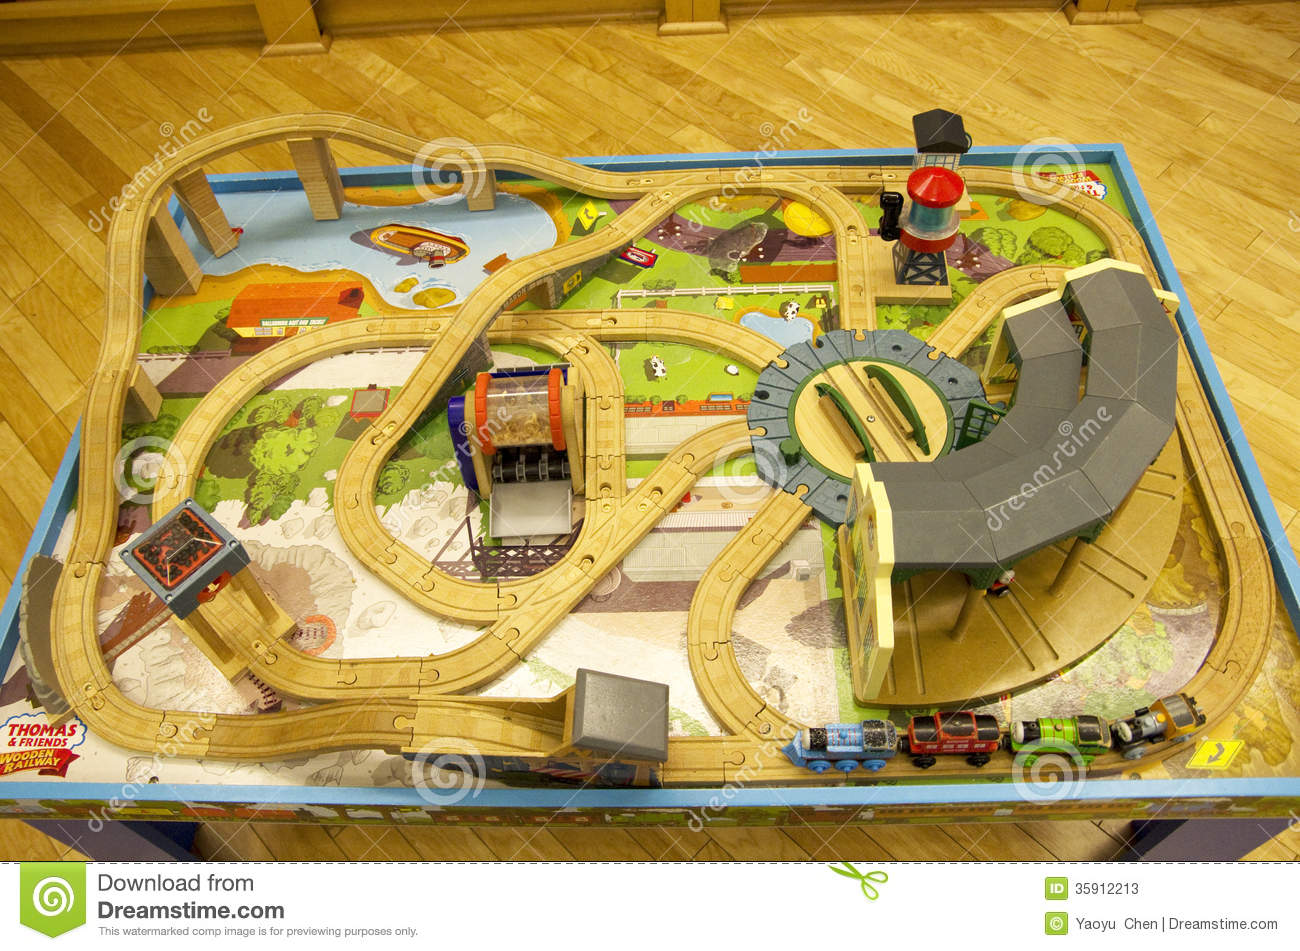 Thomas train table track set  sc 1 st  Dreamstime.com & Thomas Train Table Track Set Editorial Stock Photo - Image of wood ...